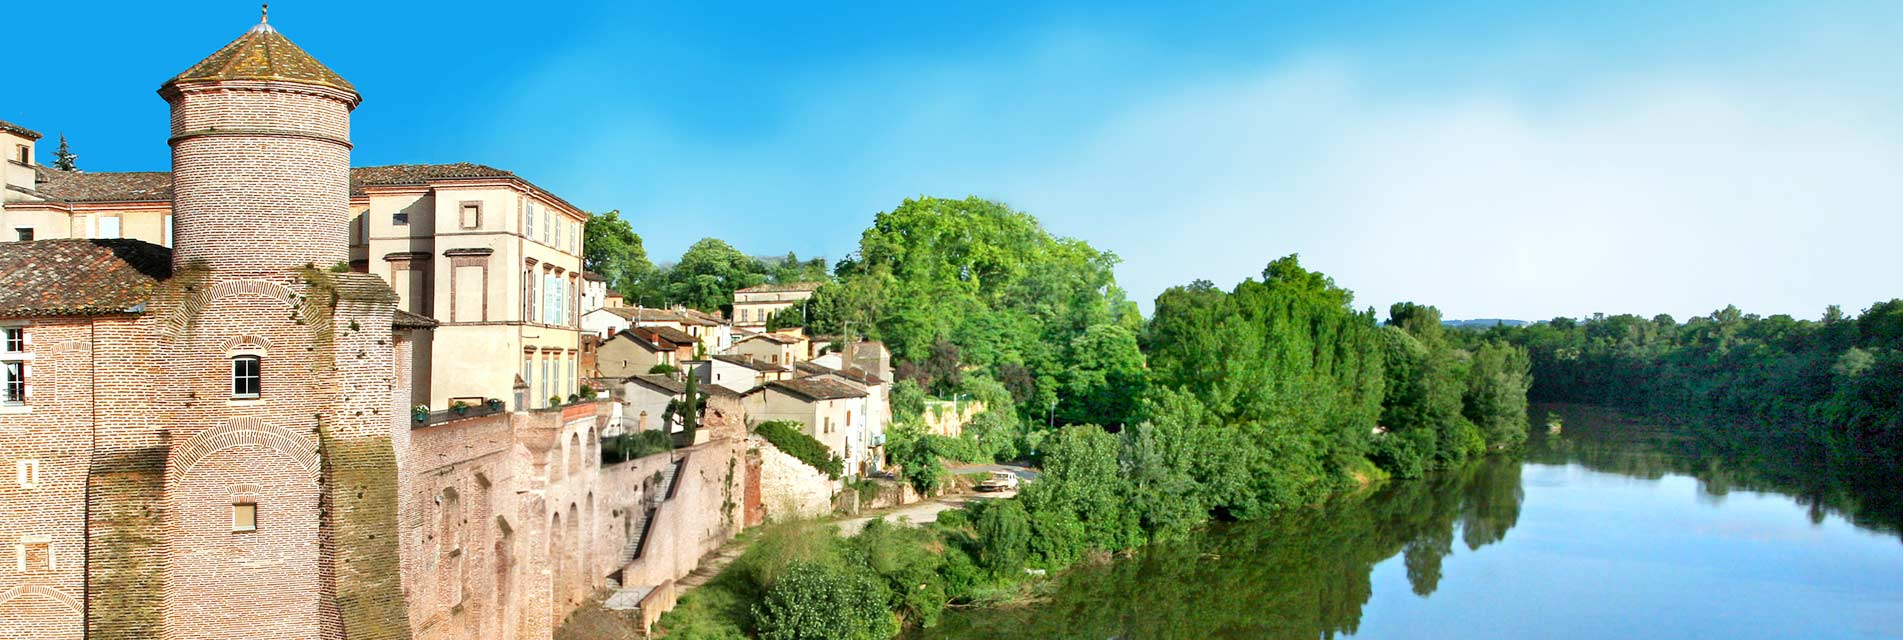 Les City Break à Gaillac